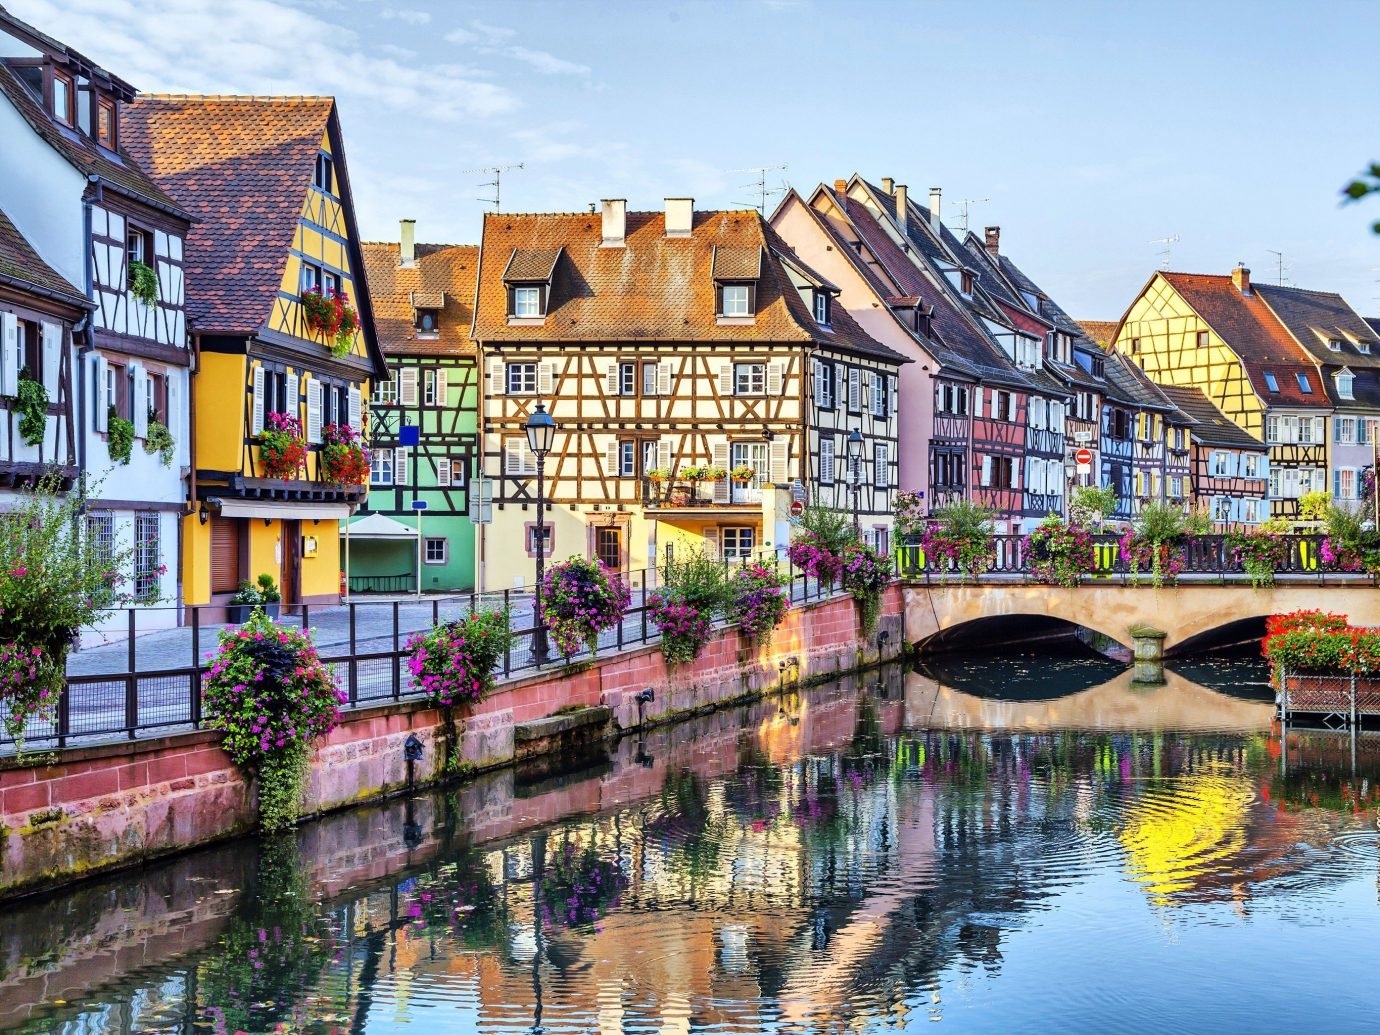 Offbeat building water outdoor Canal Town geographical feature landform body of water waterway cityscape house neighbourhood human settlement scene River vacation tourism Harbor Village flower several